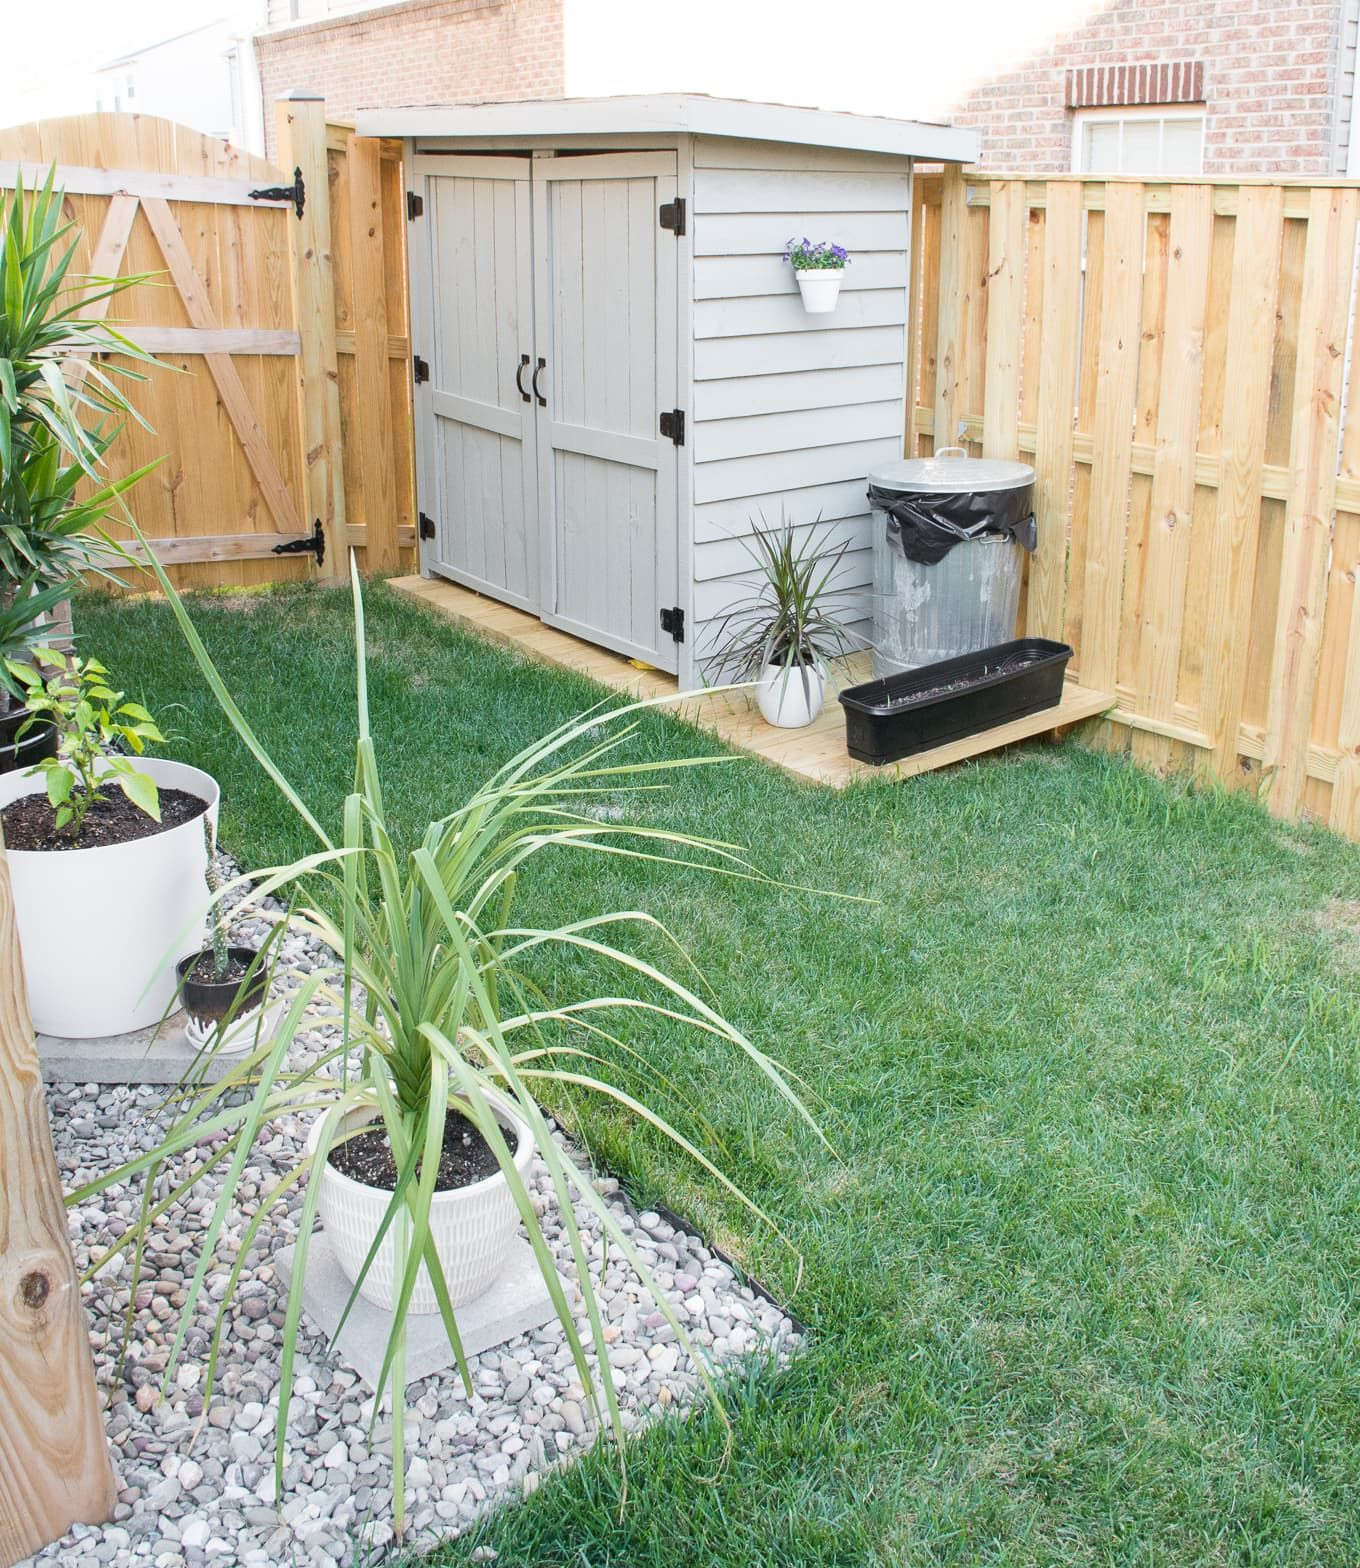 Tiny Backyard Ideas An Update On My Tiny Backyard Garden Small Backyard Landscaping Small Backyard Gardens Backyard